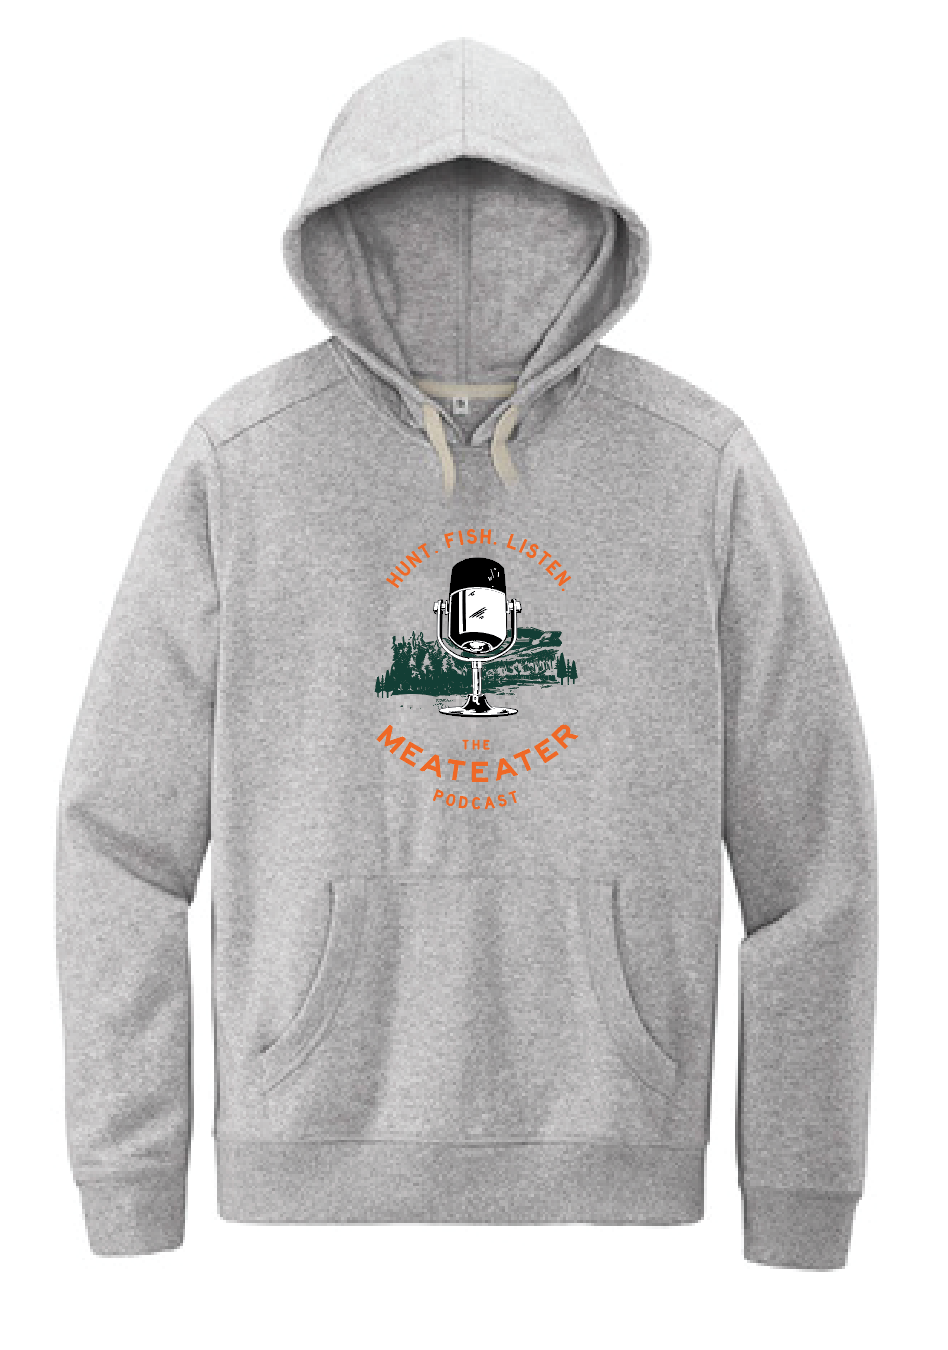 Podcast Hoody